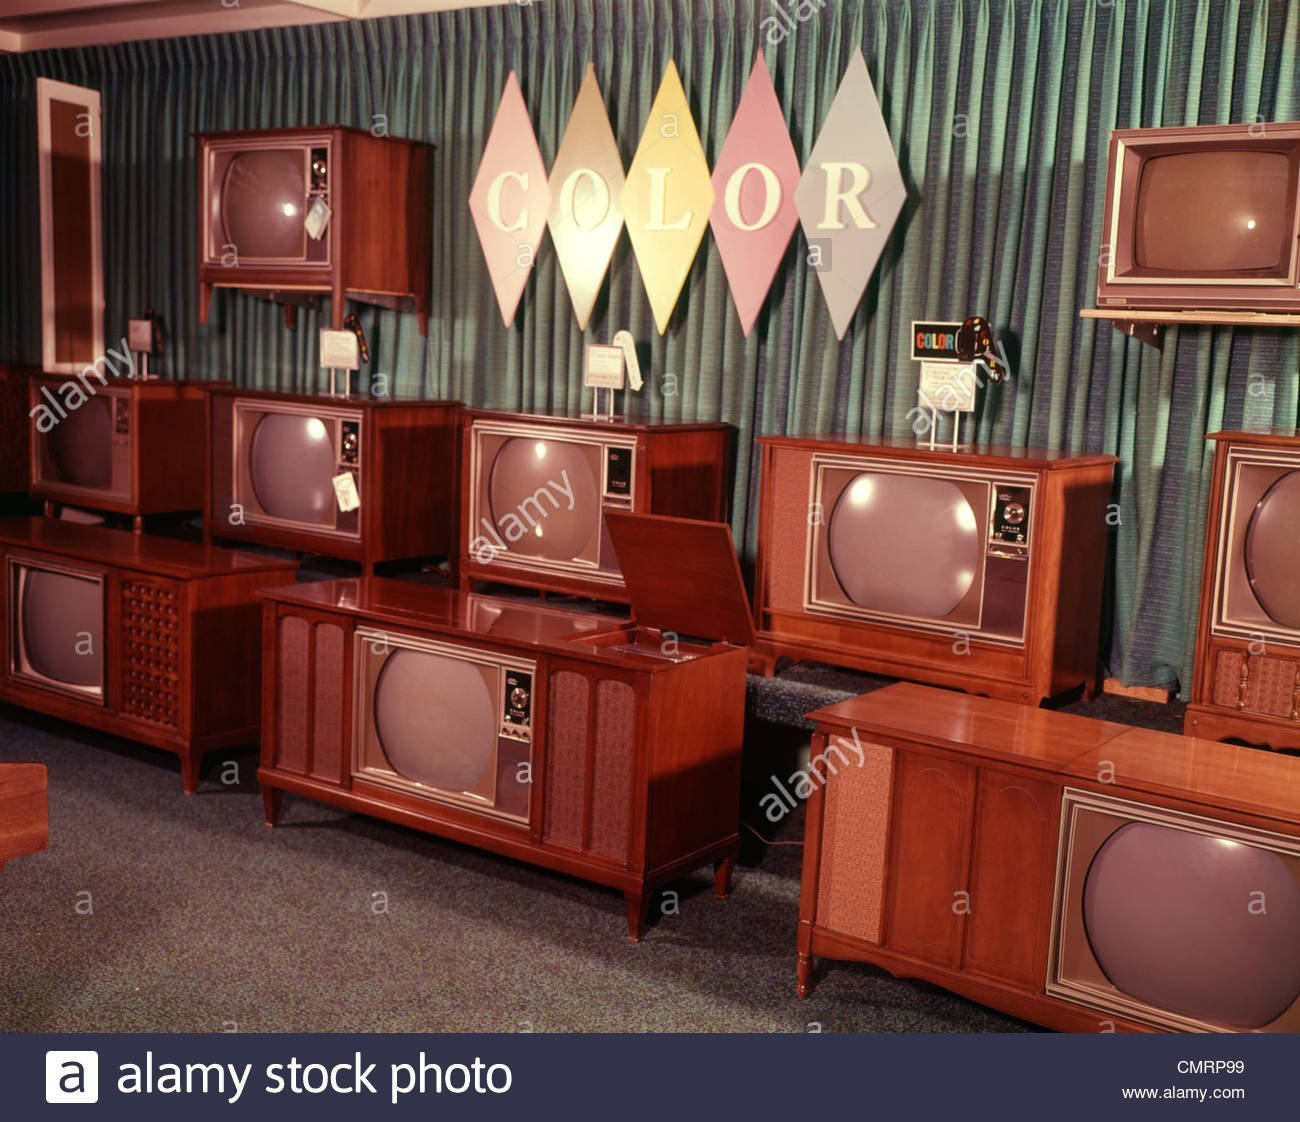 1960-1960s-display-of-color-television-sets-for-sale-department-store-CMRP99.jpg